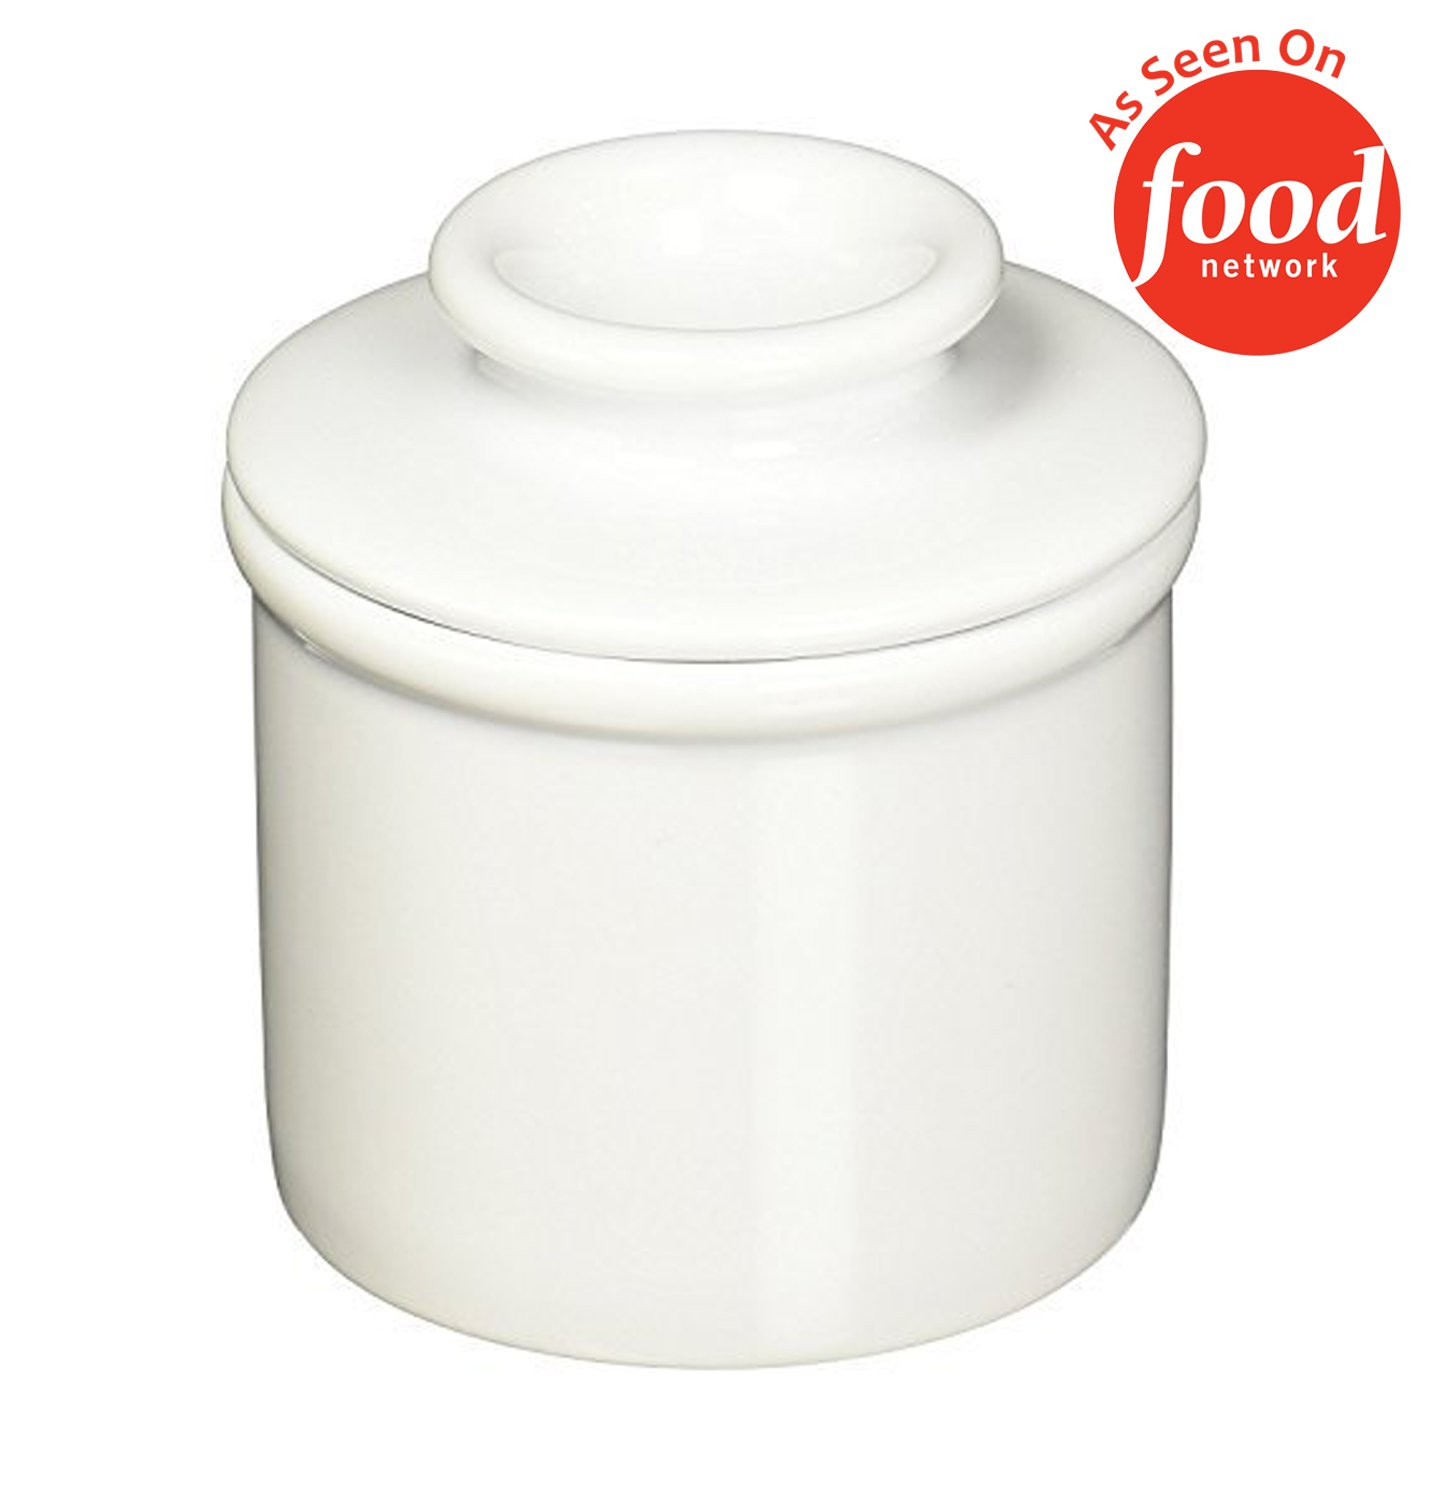 The Original Butter Bell Crock by L. Tremain, Retro & Matte Collection - White